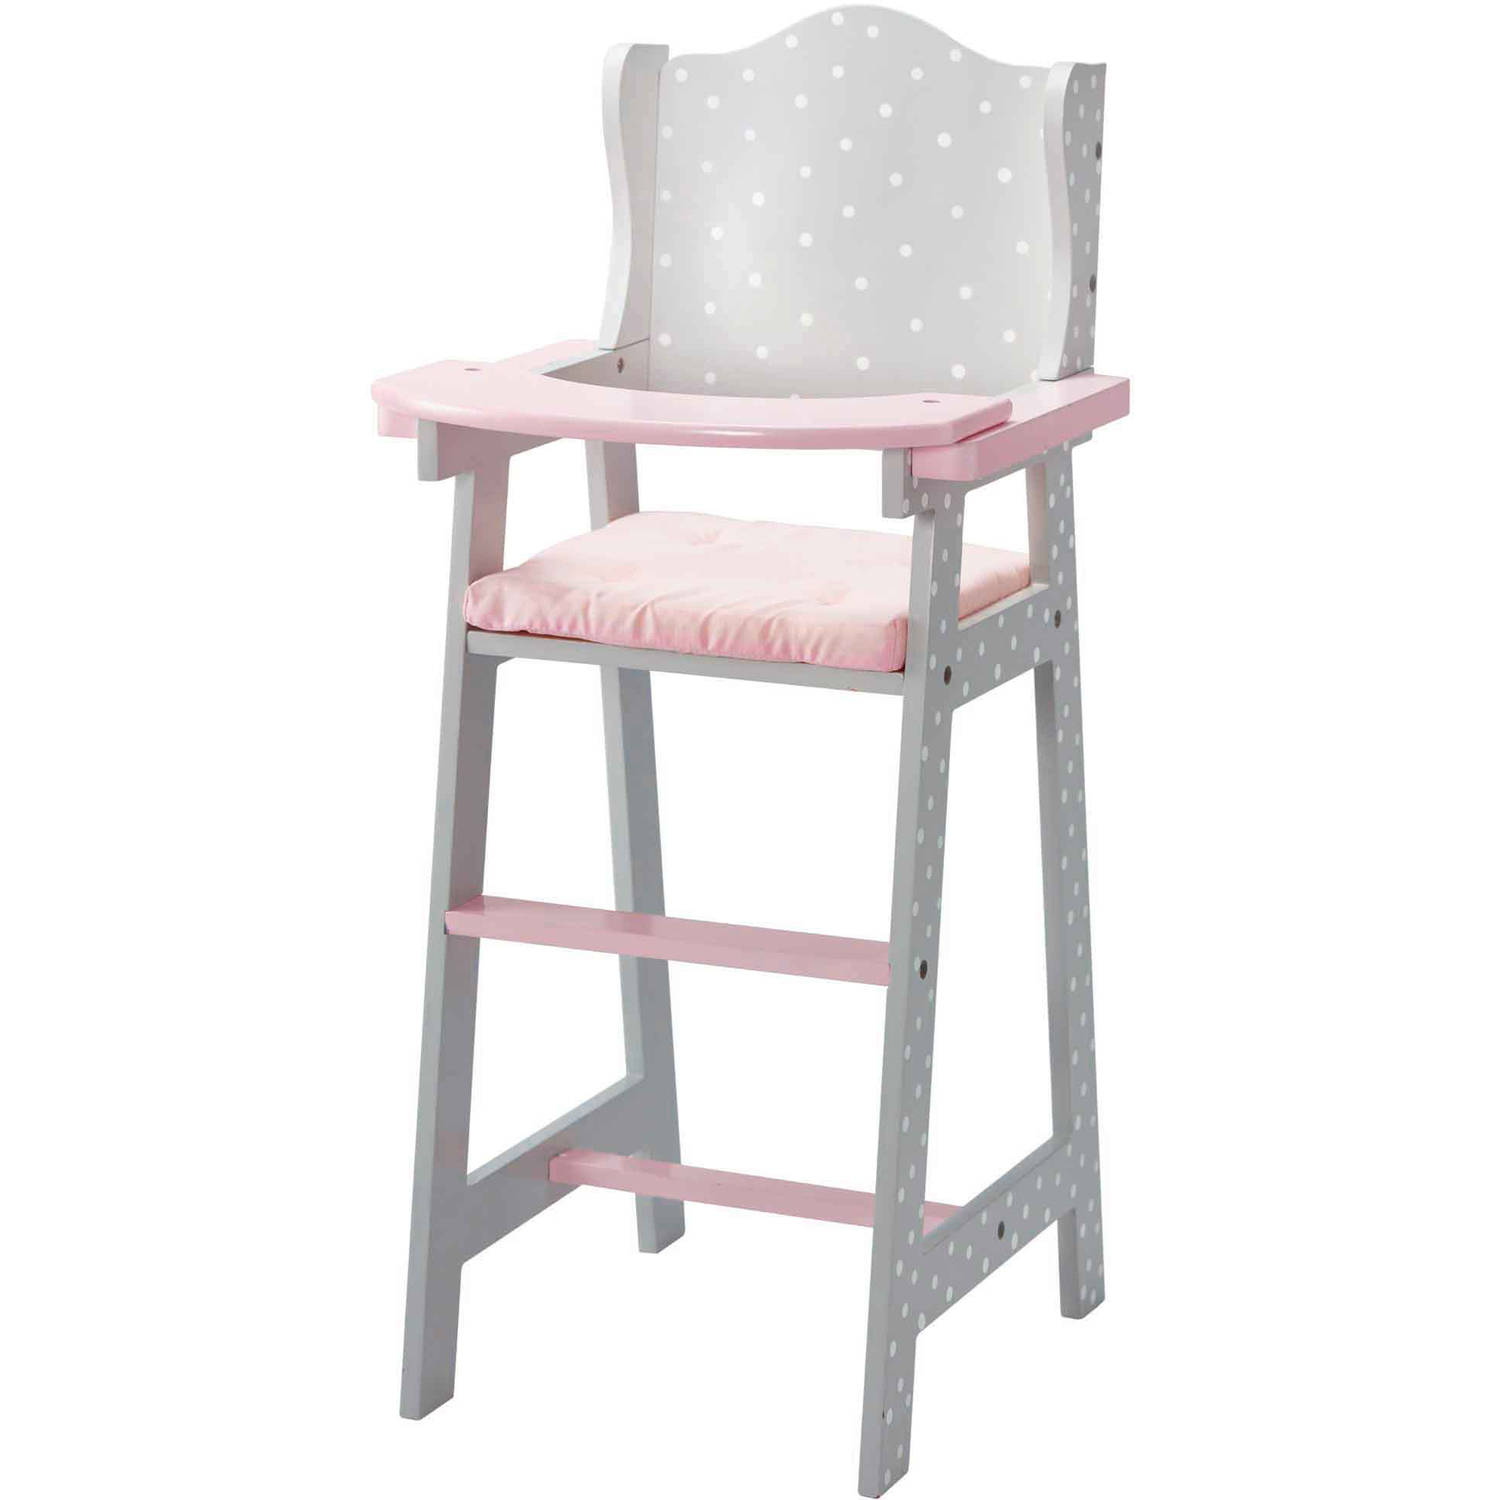 Olivia s Little World Baby Doll Furniture Baby High Chair